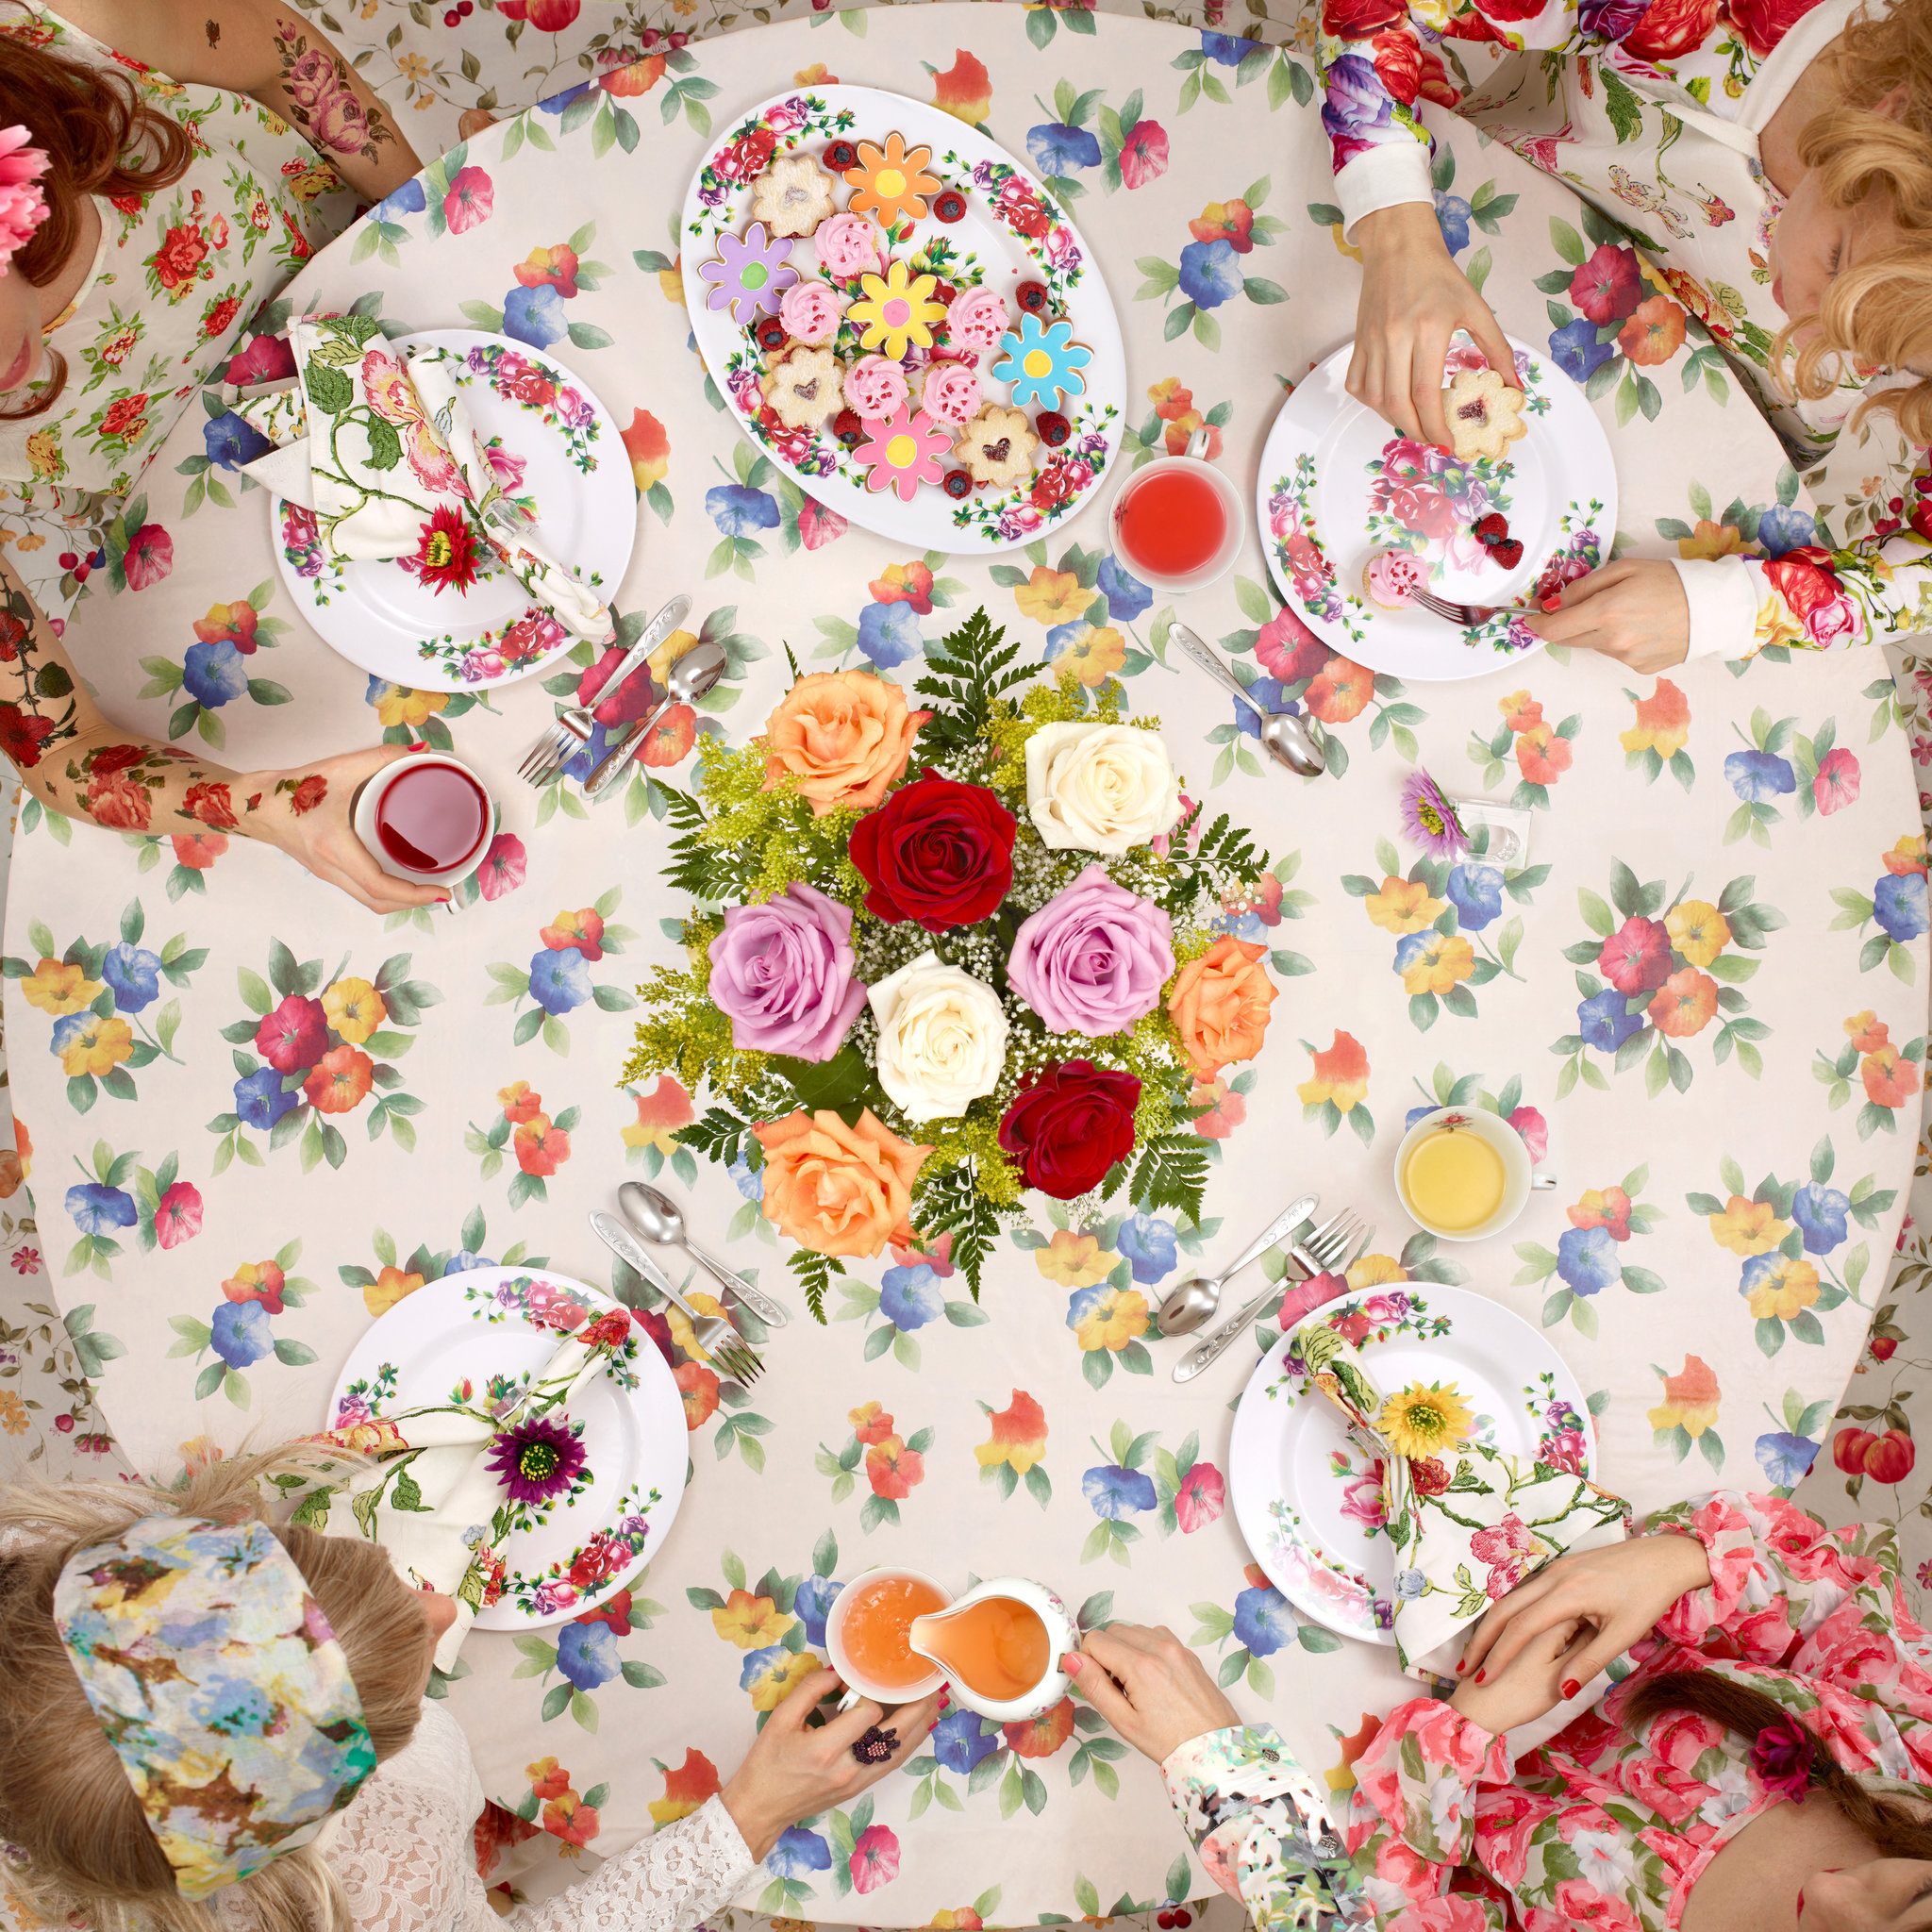 a group of young girls host tea time around a floral tablecloth